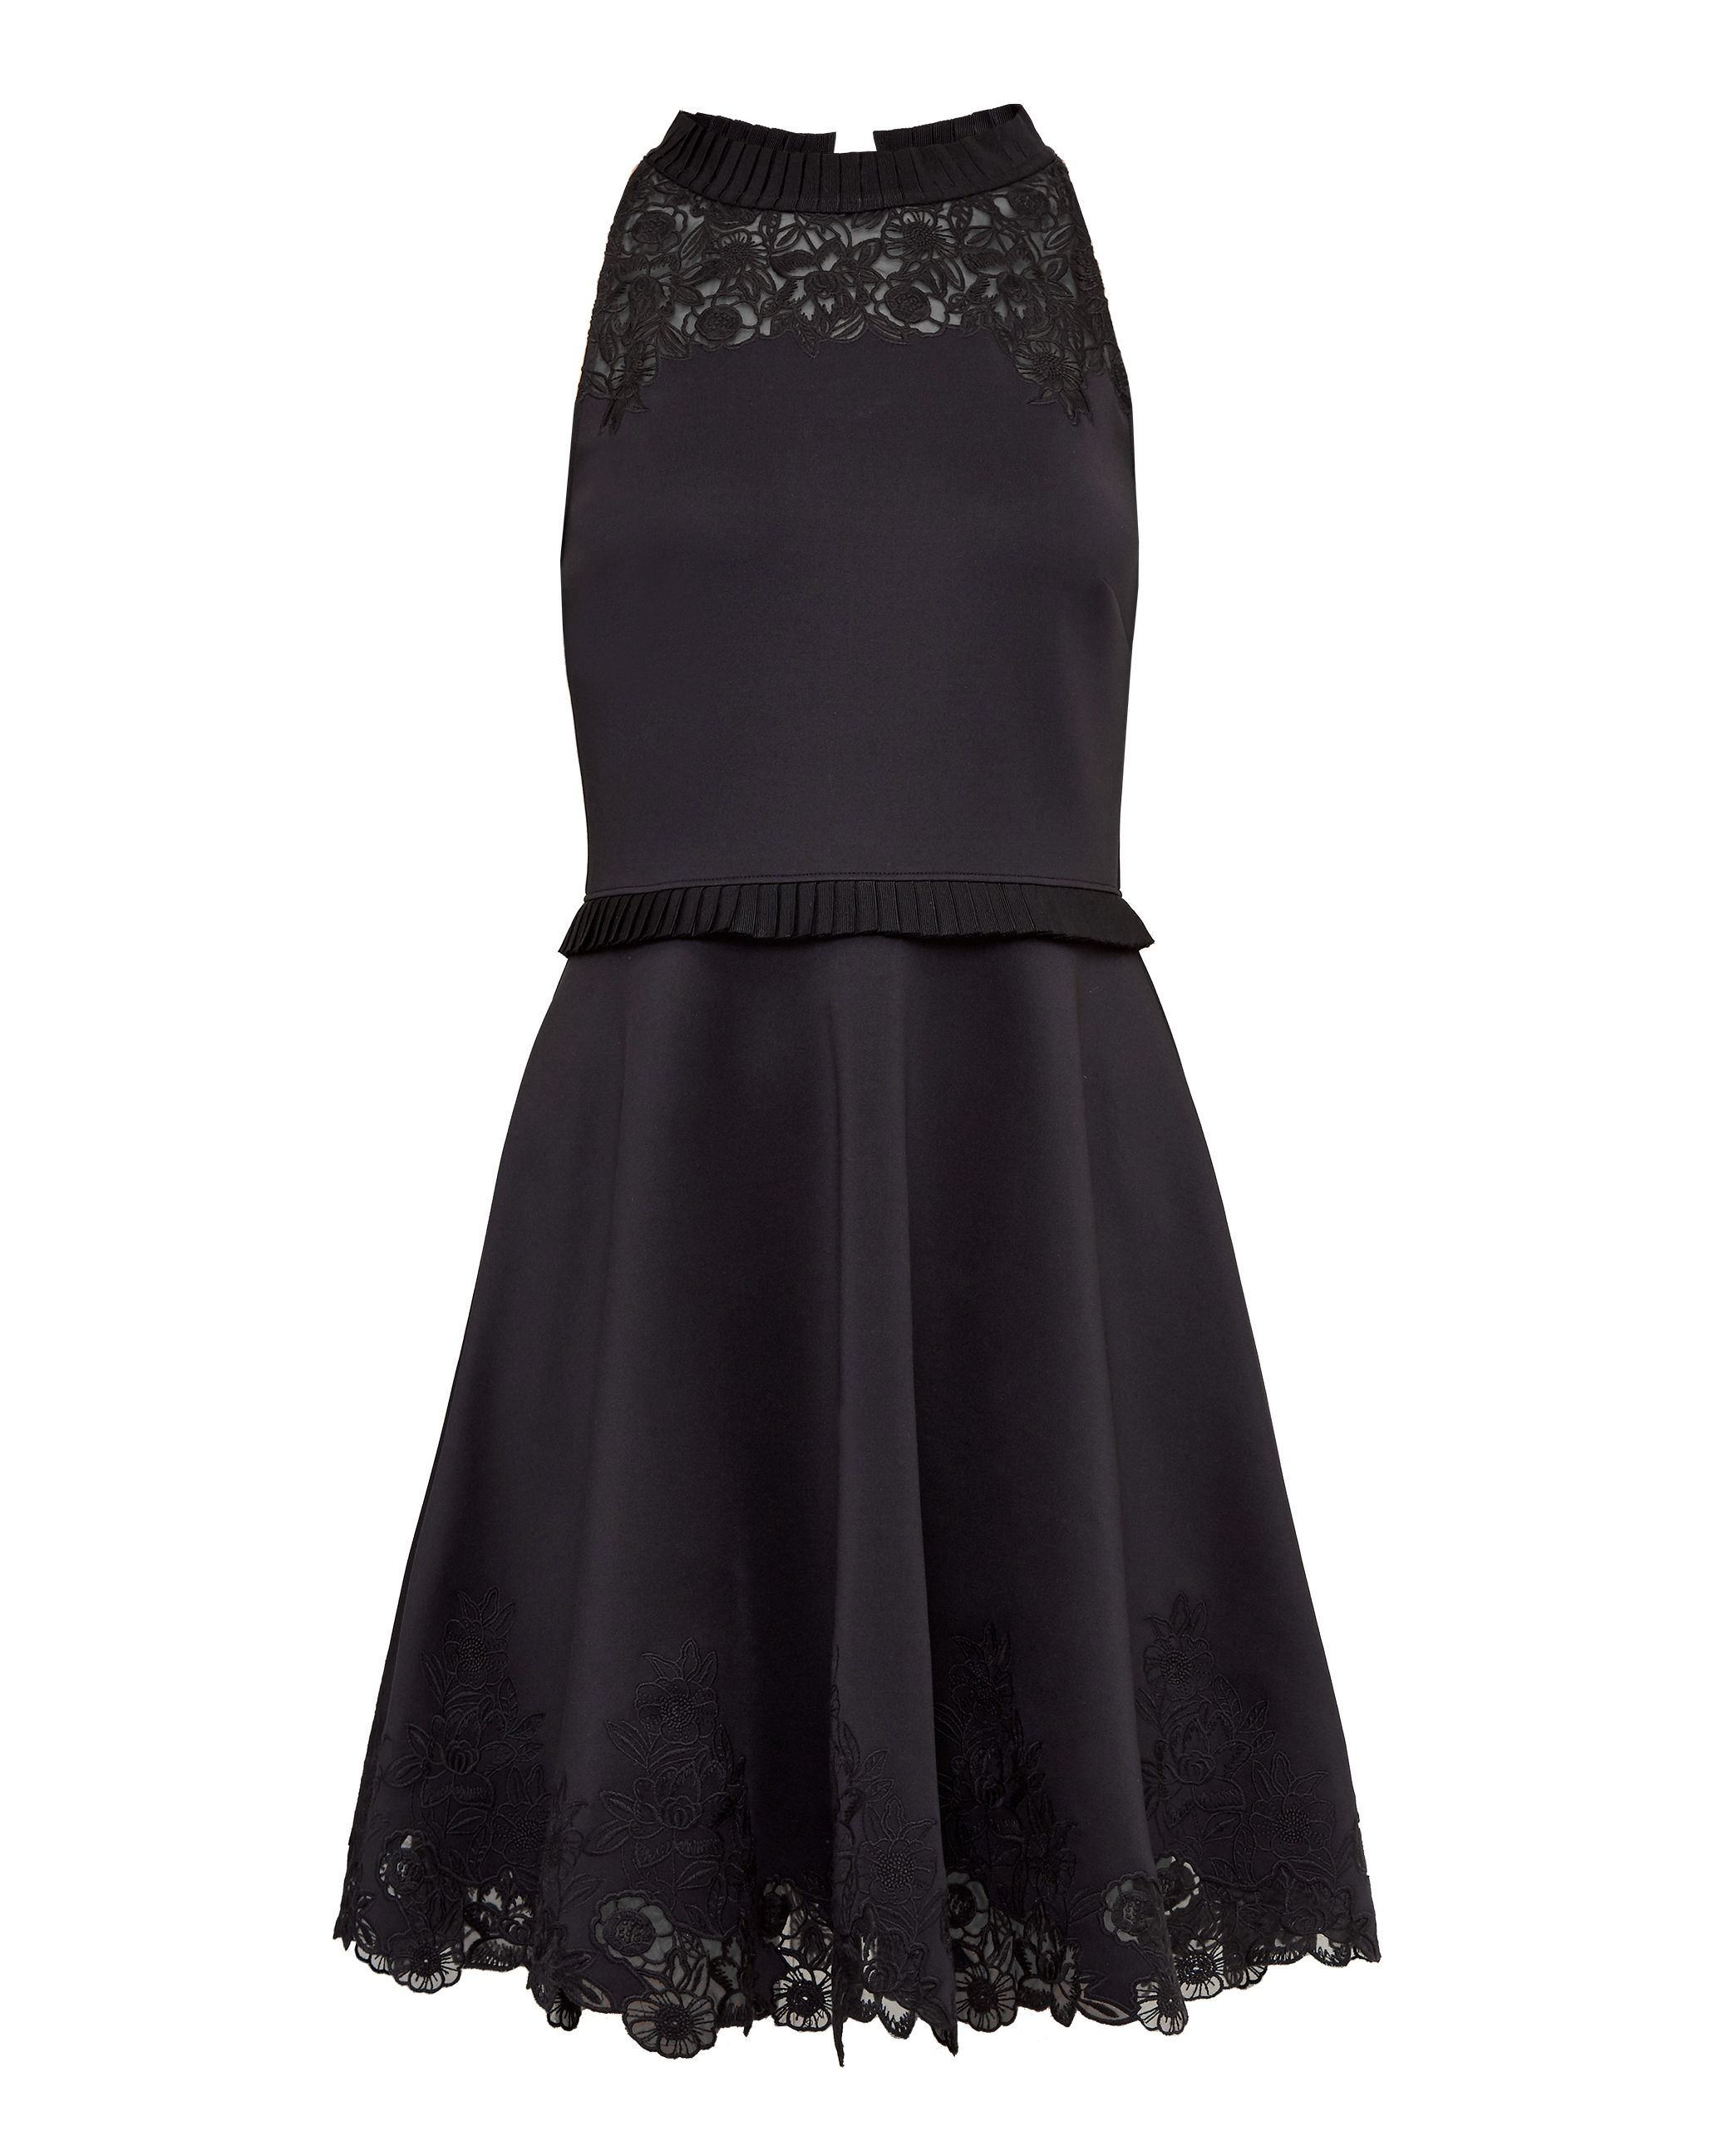 Ted Baker Zaffron Embroidered Ruffle Skater Dress, Black